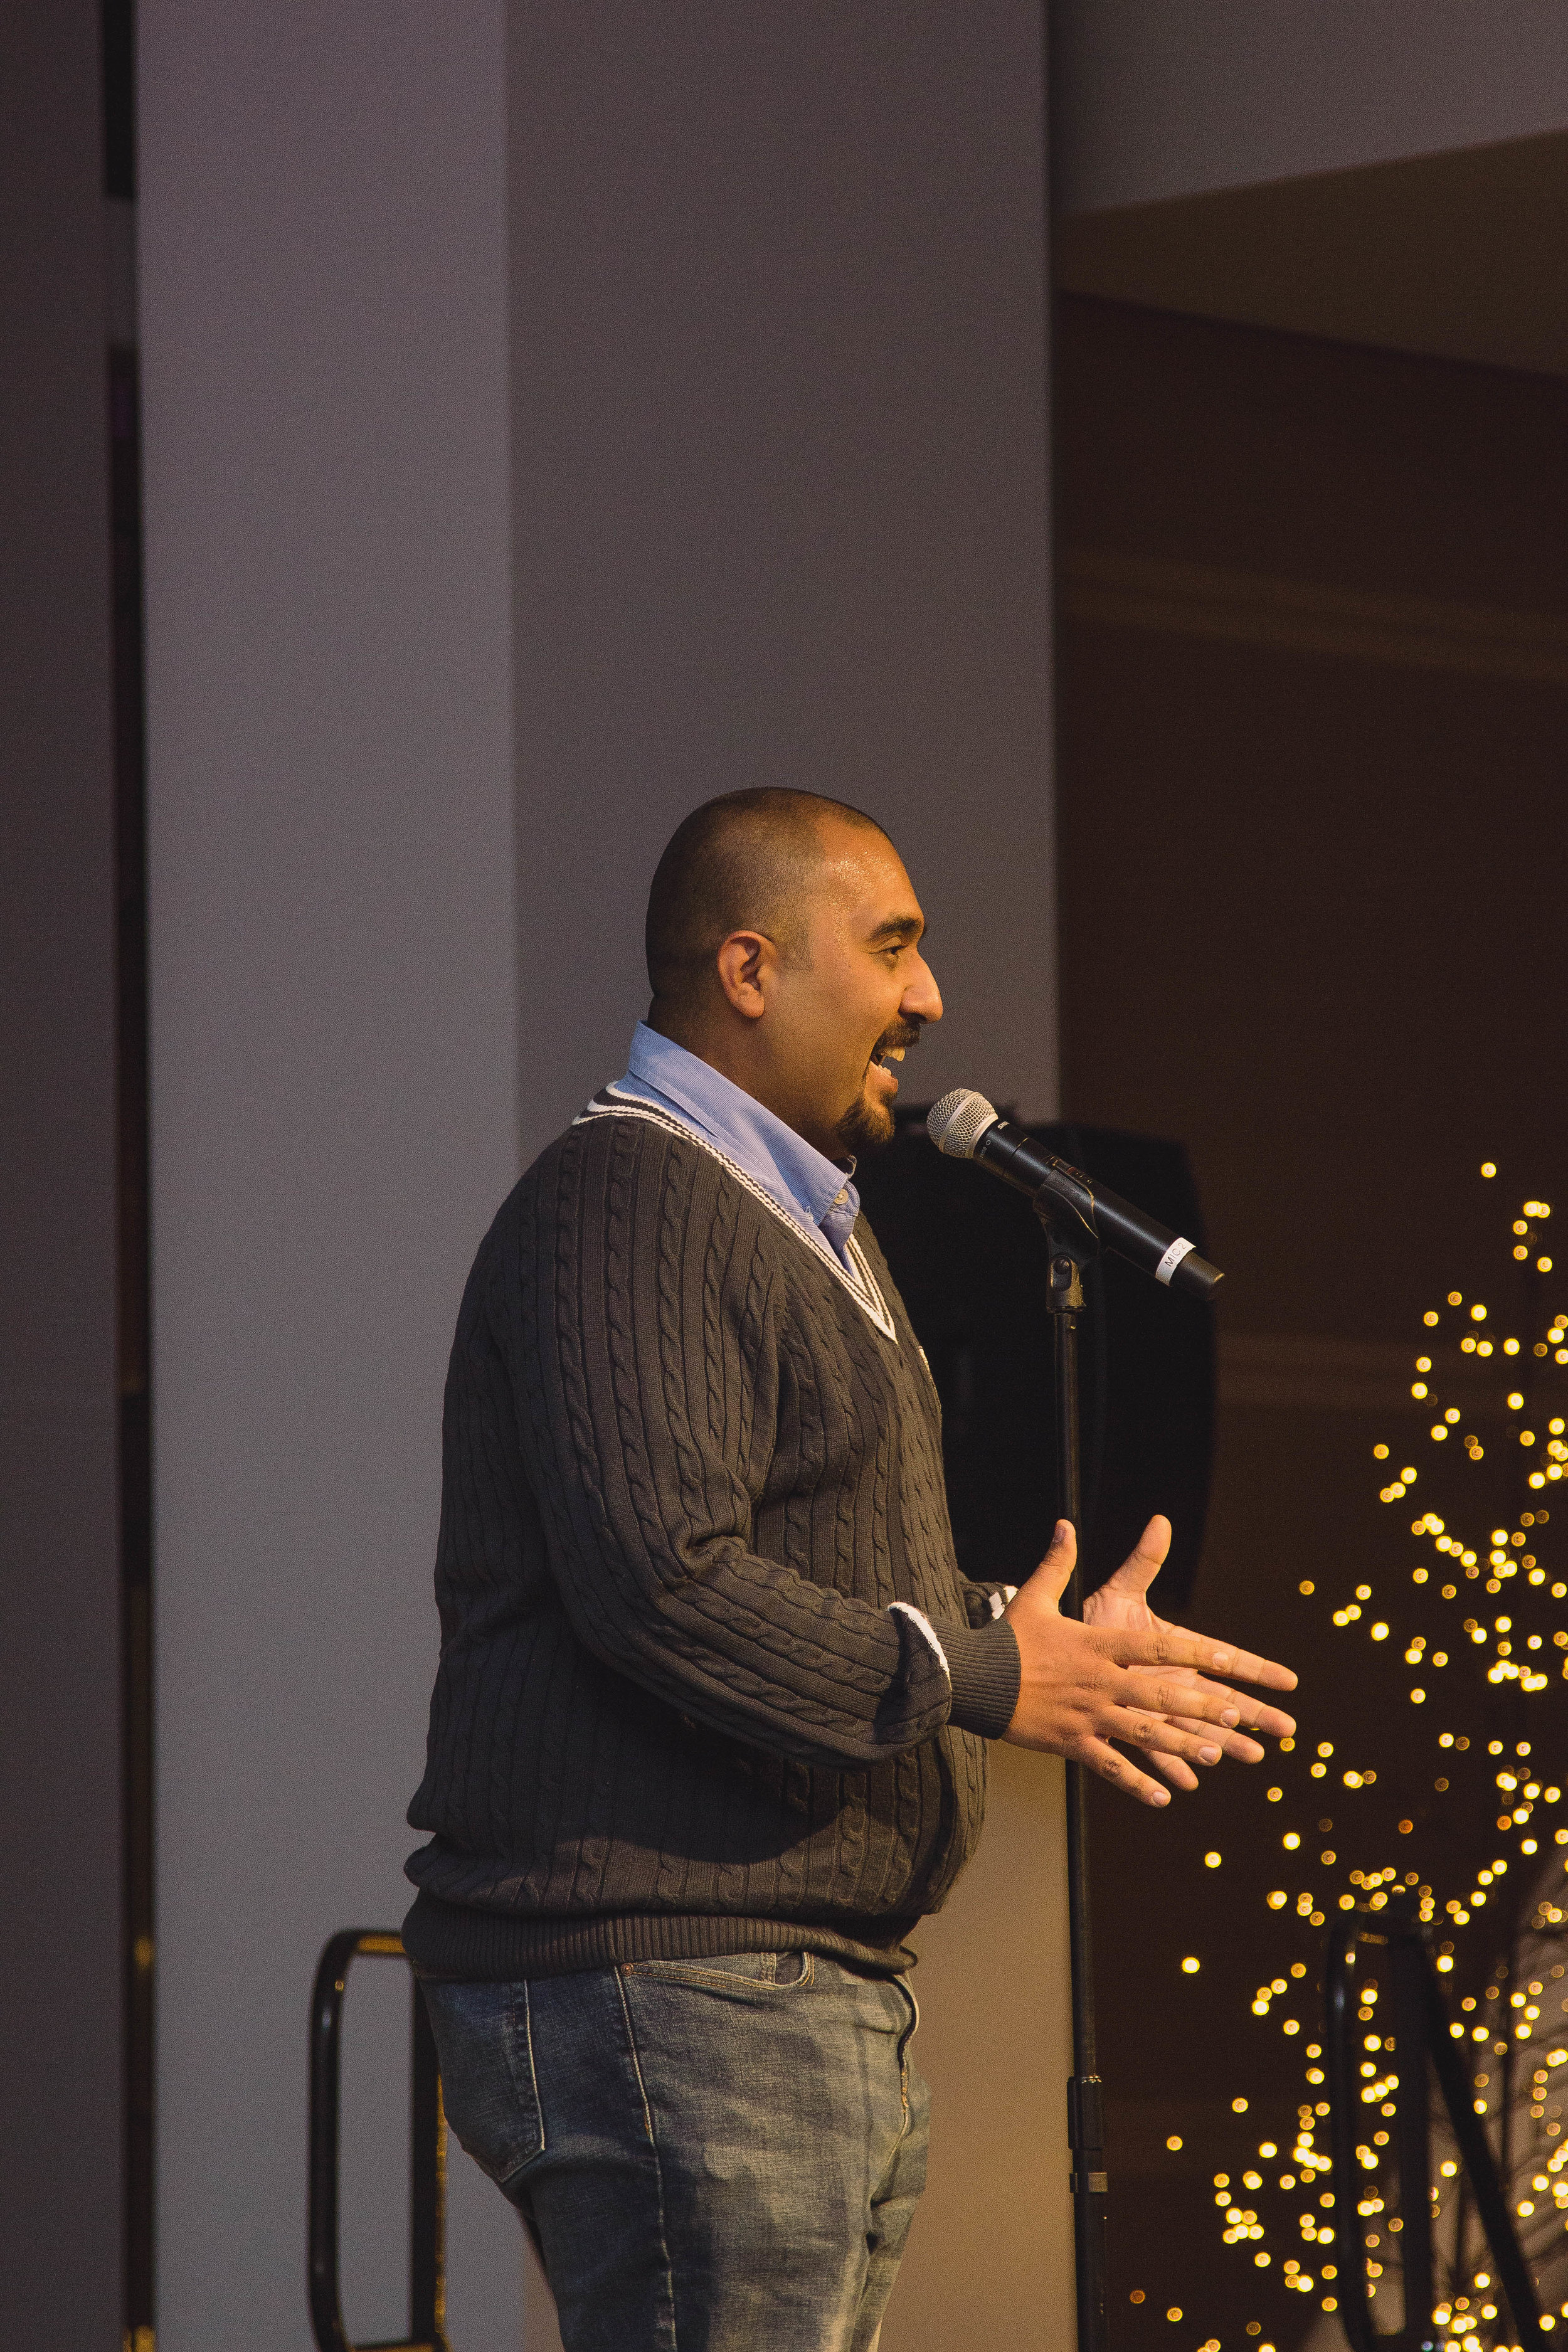 Ali Mustafa shares his story Jack's Urban Meeting Place in Boise, ID at a Story Collider show produced in partnership with Micron School of Materials Science and Engineering in November, 2018. Photo by Lauren Branch.